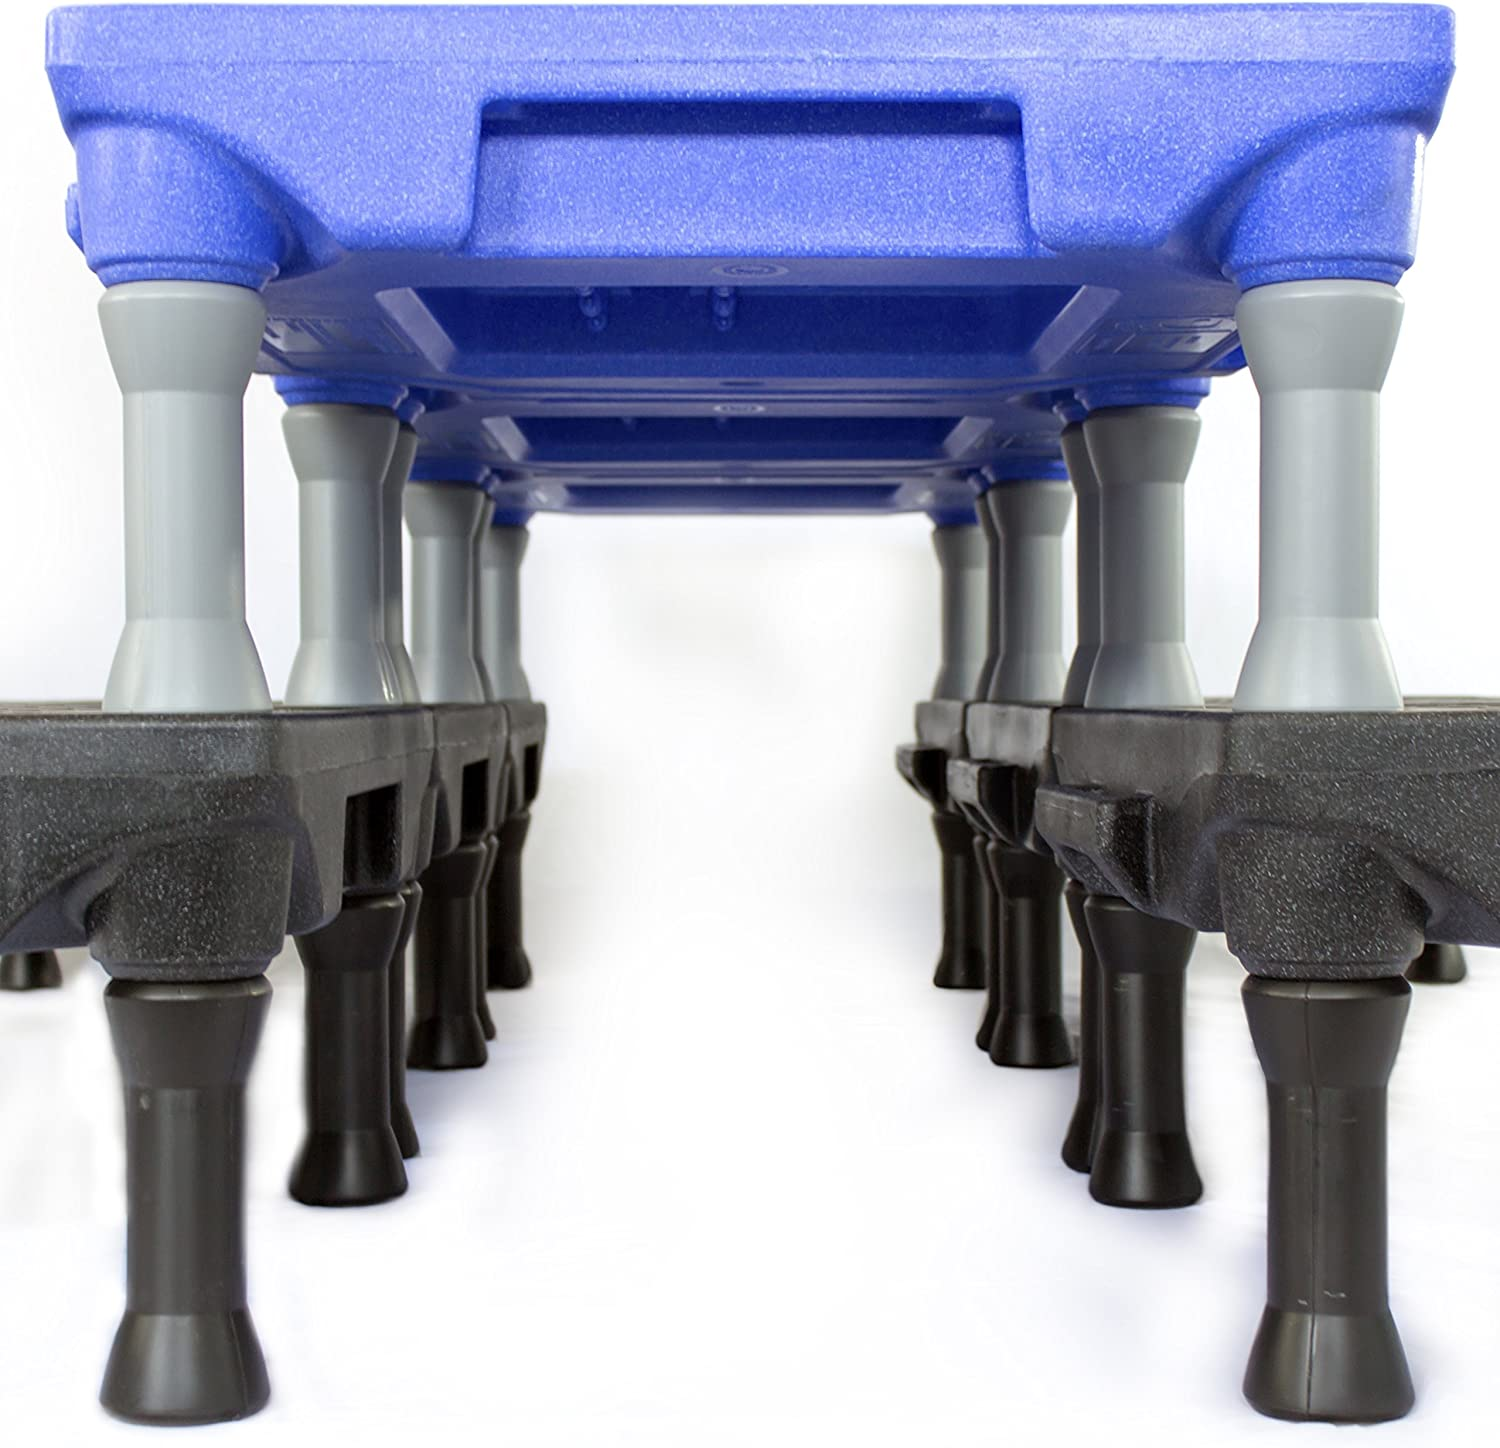 Blue-9 The KLIMB Dog Training Platform & Agility System Blue